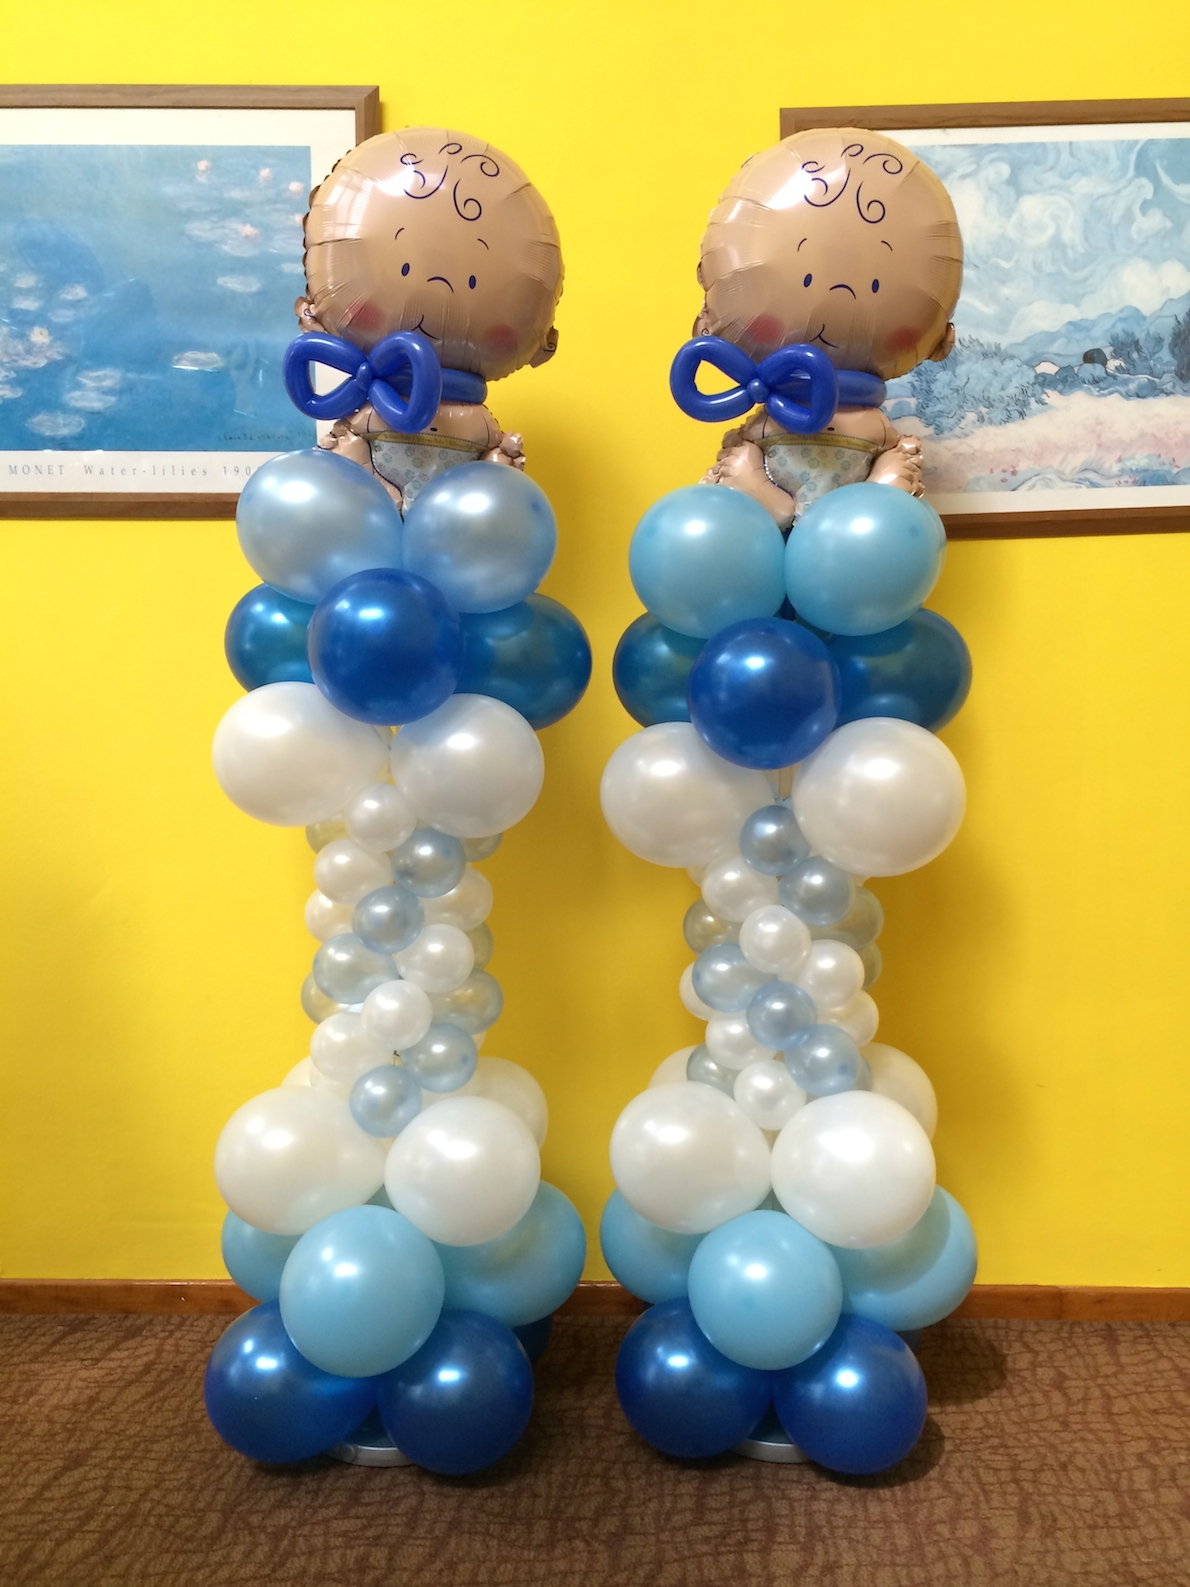 Baby birthday balloon decorations that balloons for Baby birthday decoration photos